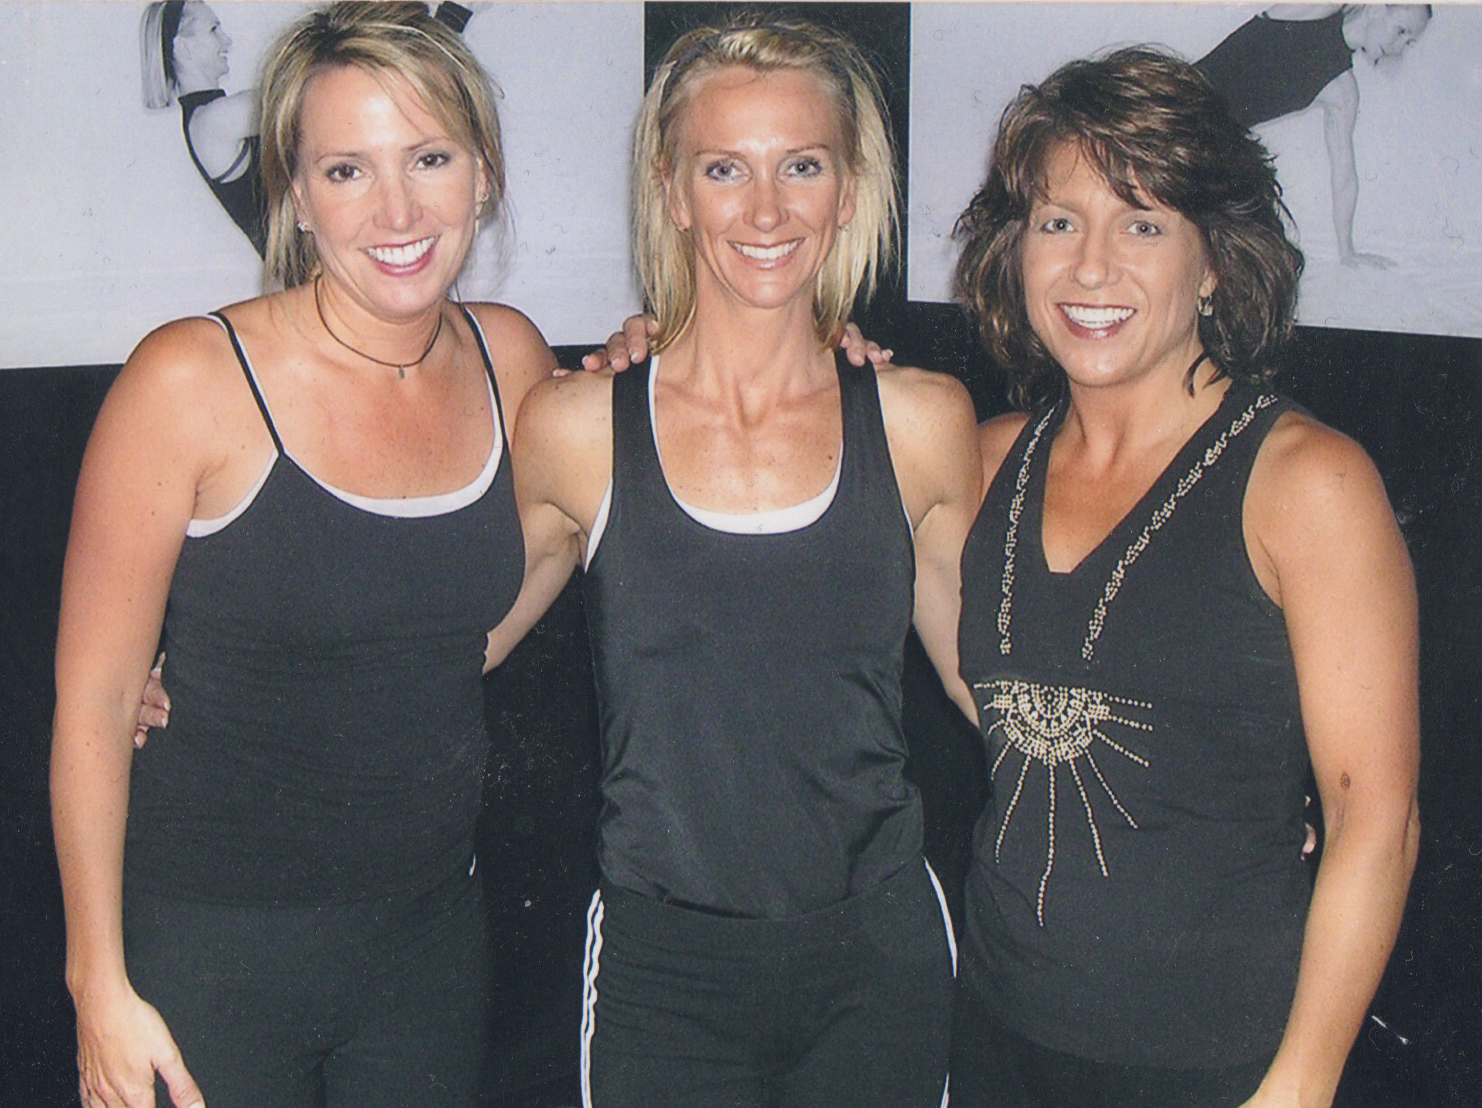 Christi and friends...